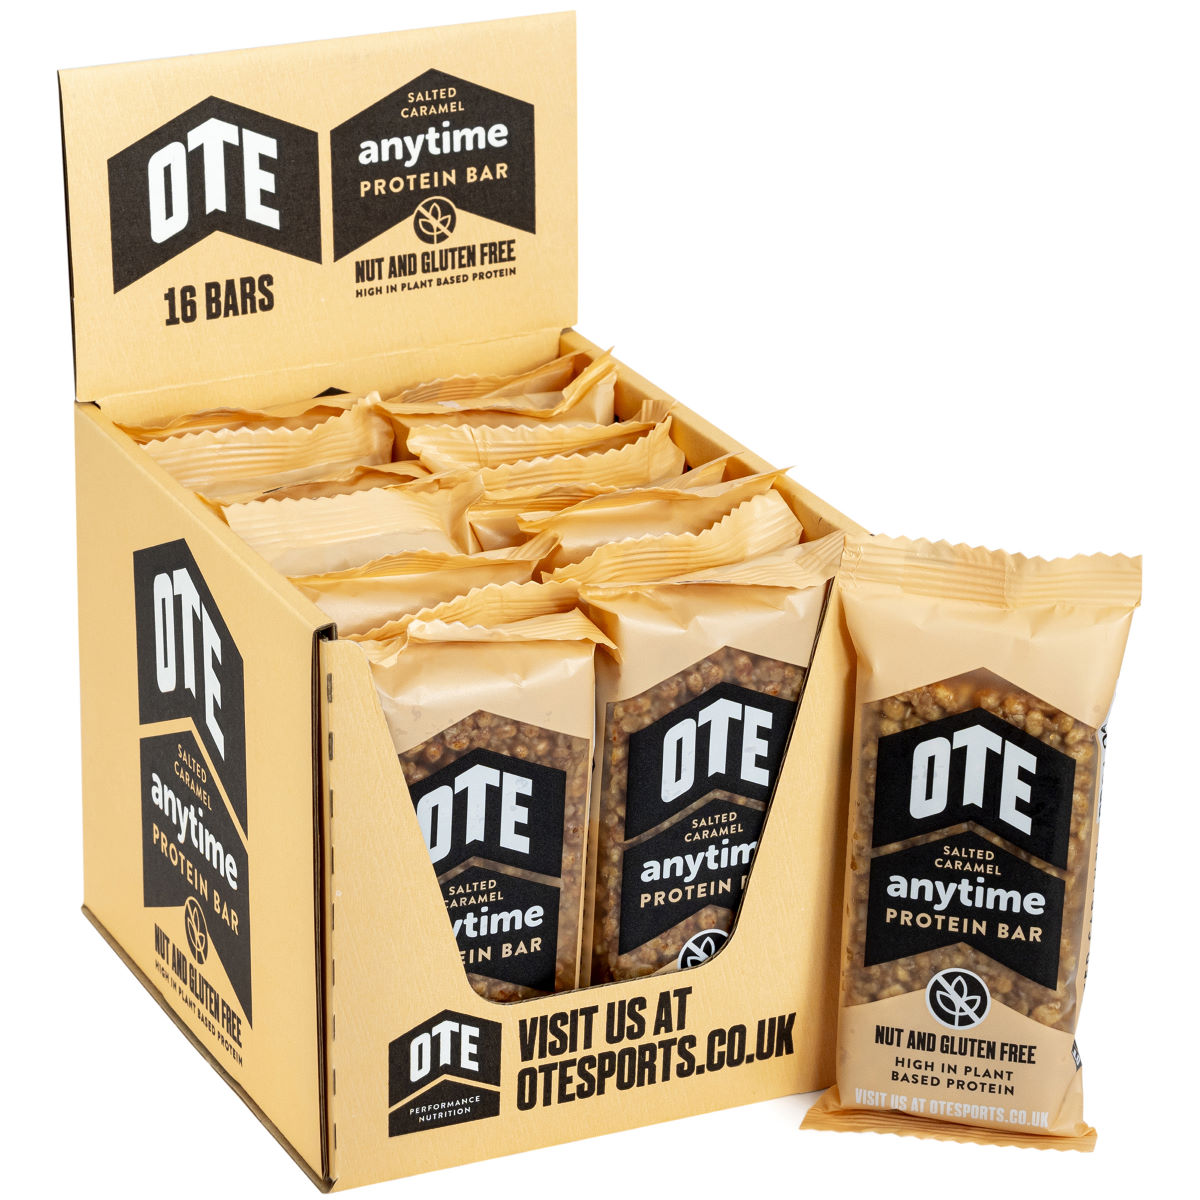 Ote Anytime Plant Based Protein Bar (16 X 55g) - One Size Caramel